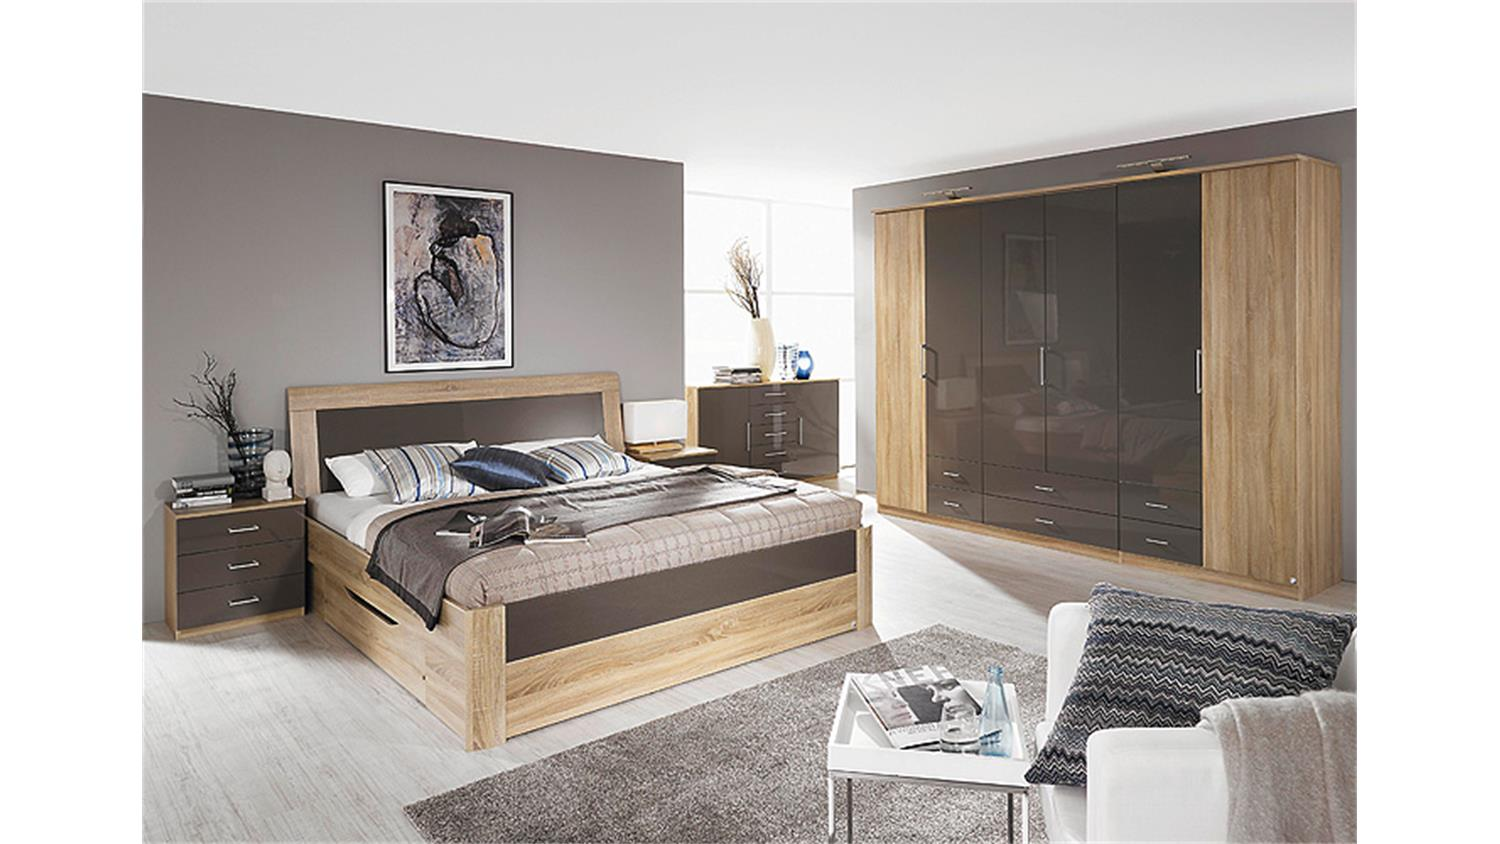 schlafzimmer set mit matratze und lattenrost speyeder. Black Bedroom Furniture Sets. Home Design Ideas